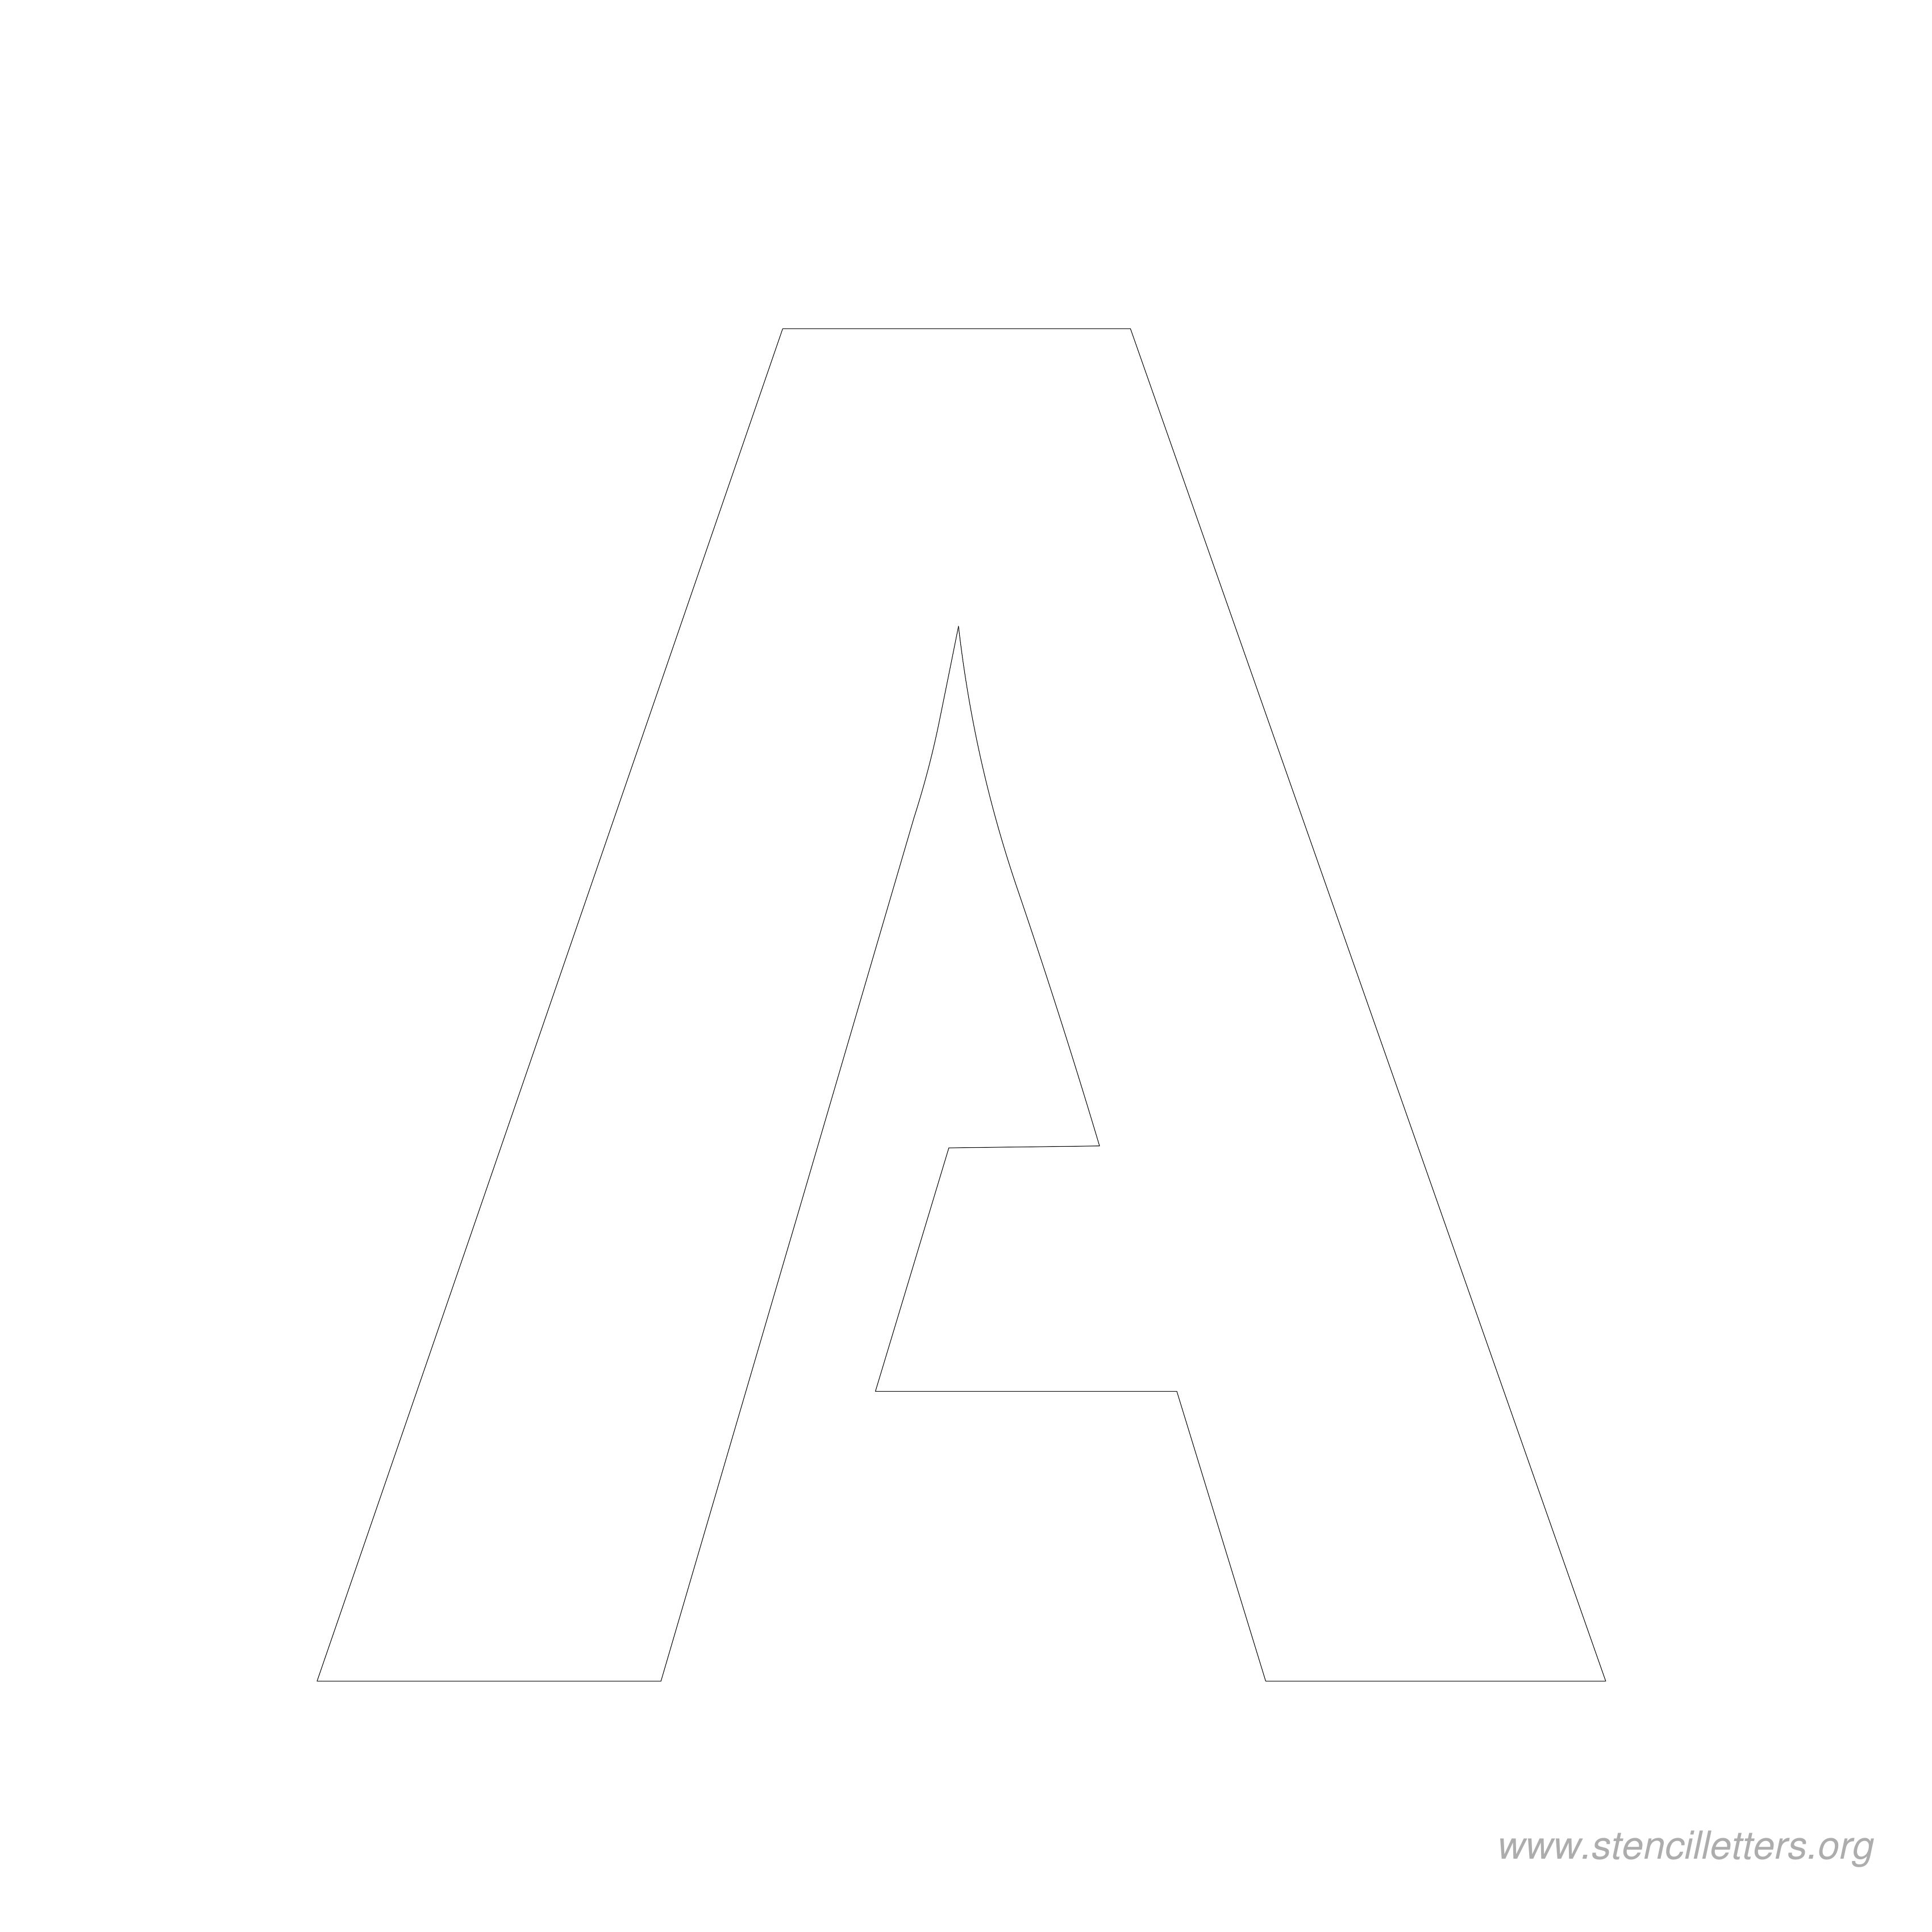 Letter Printable Images Gallery Category Page 4